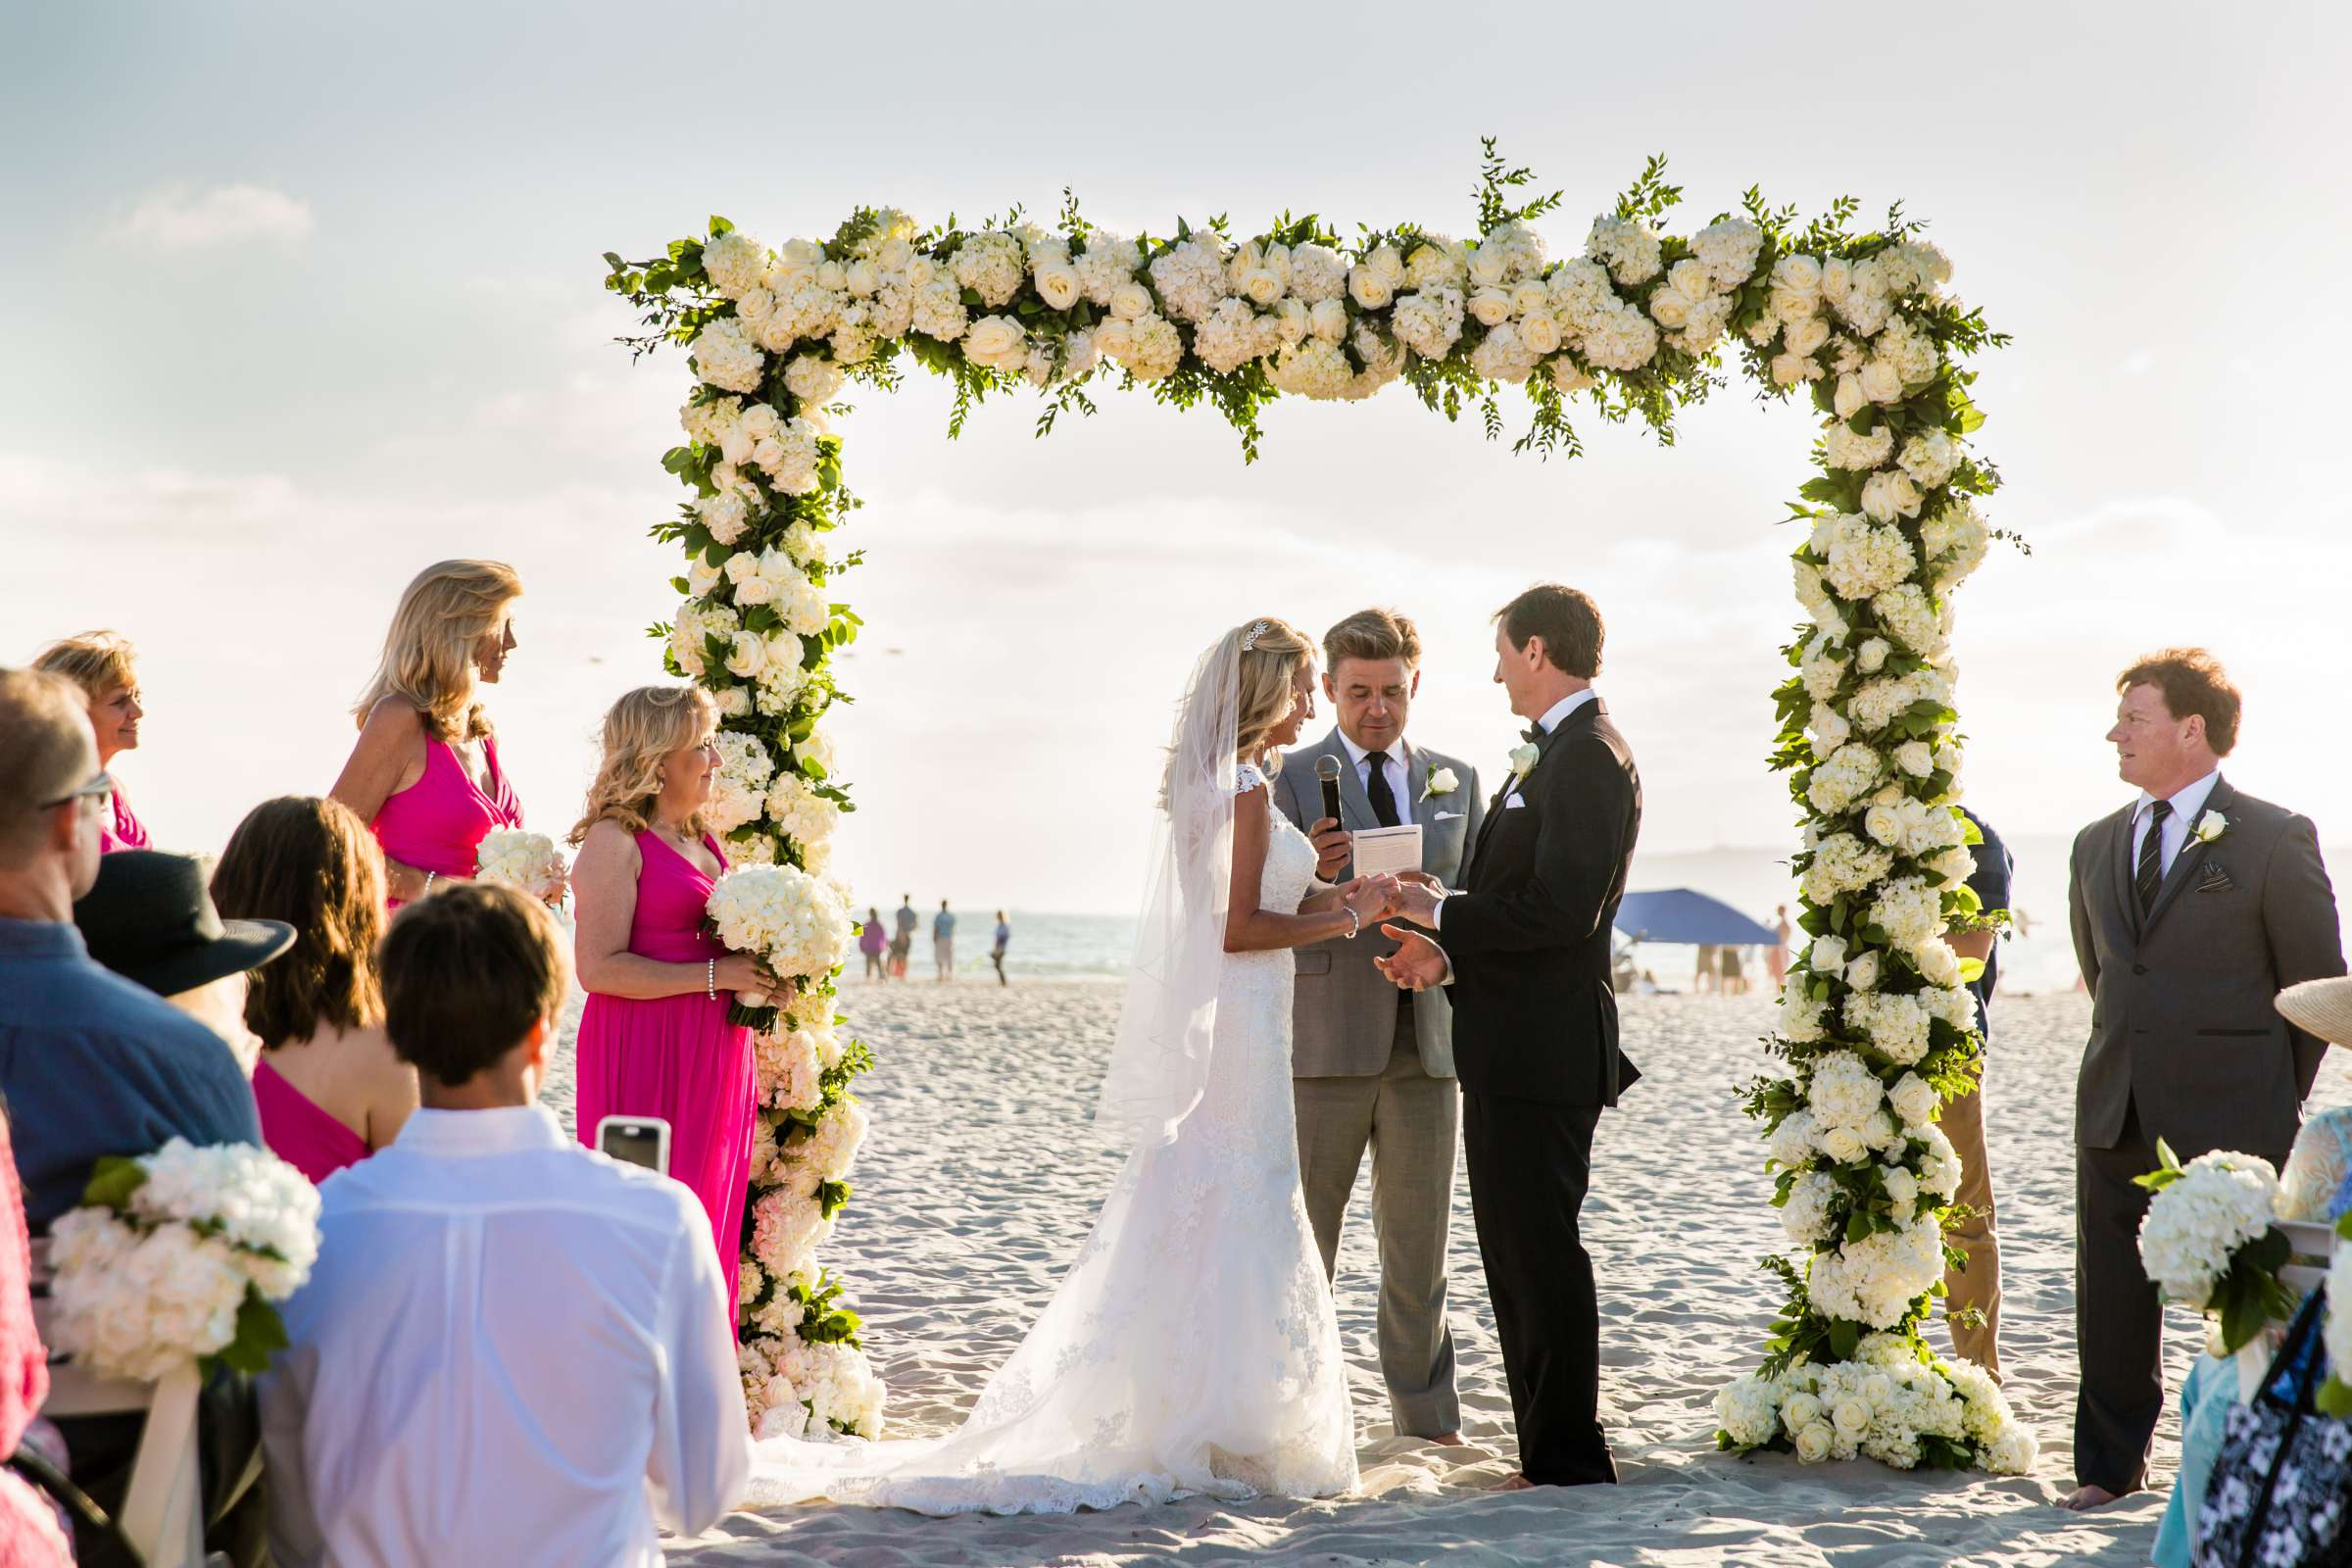 Hotel Del Coronado Wedding coordinated by Creative Affairs Inc, Diane and Paul Wedding Photo #62 by True Photography